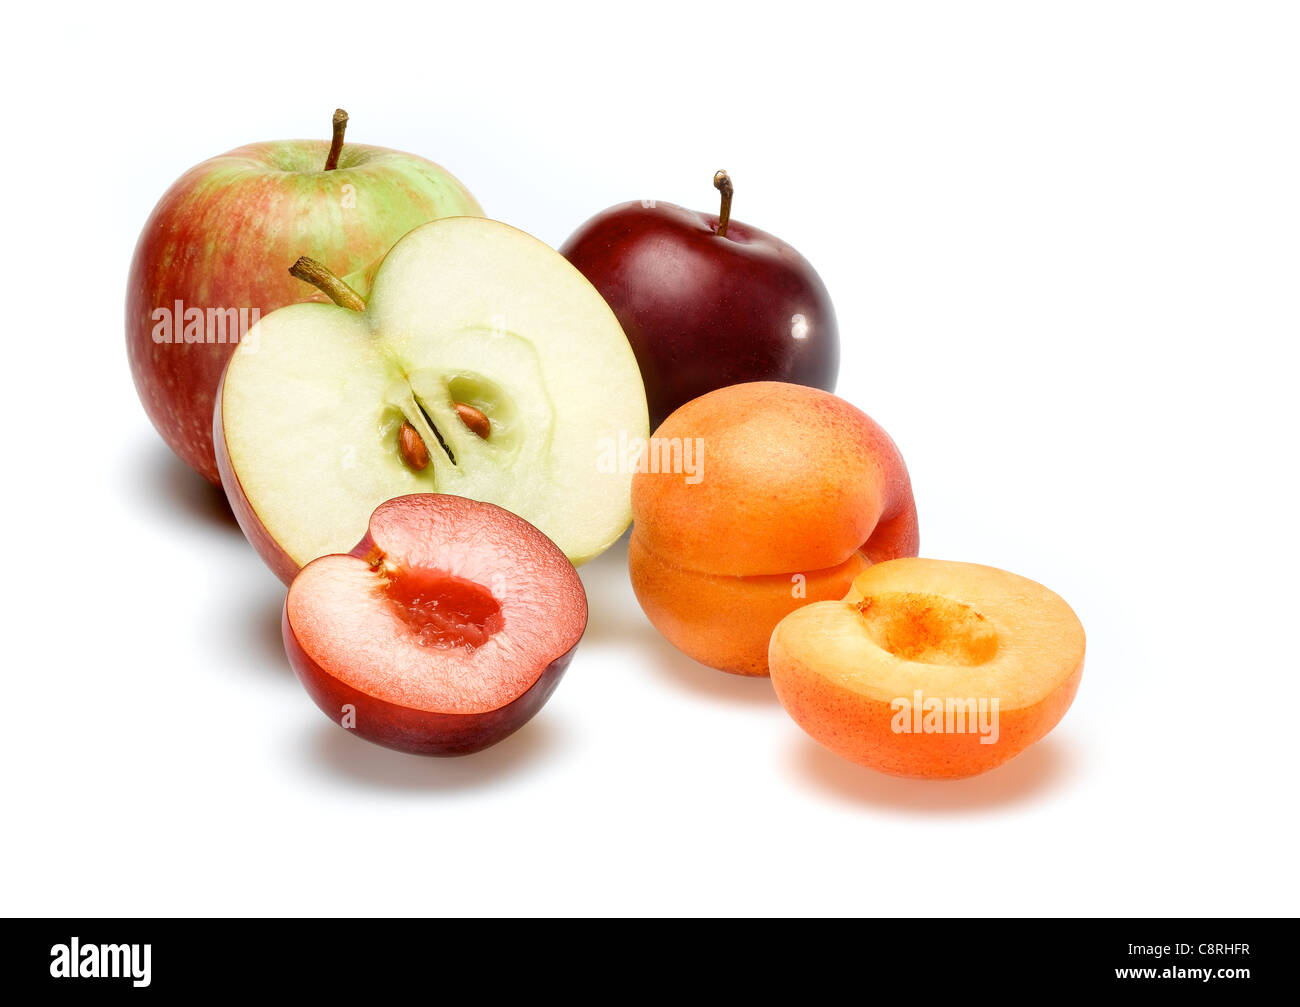 Apple Plum Apricot - Stock Image